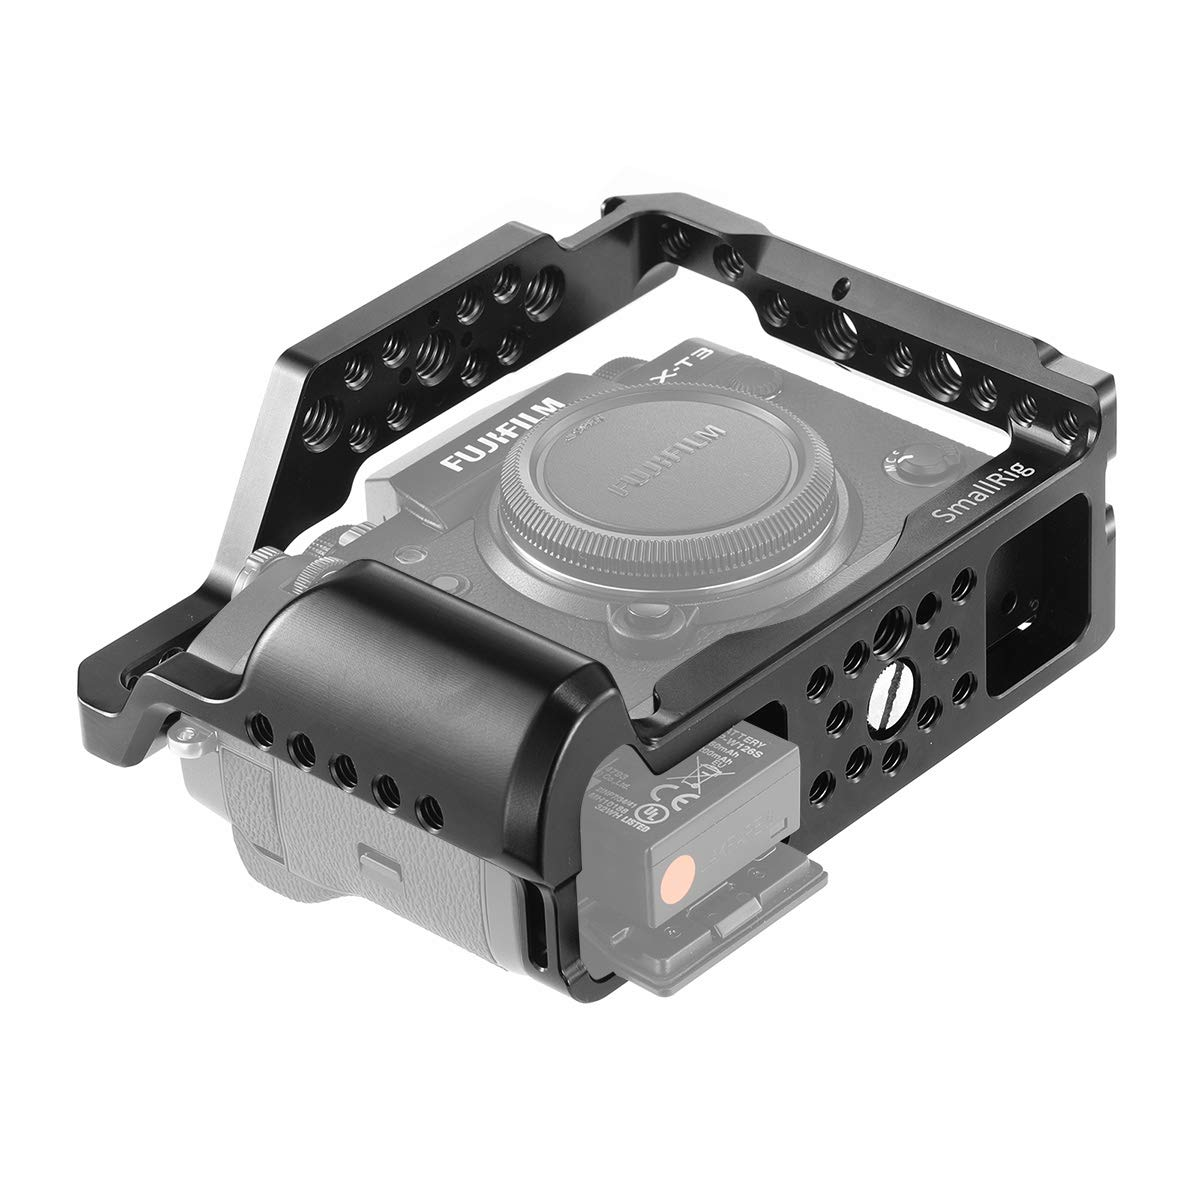 SMALLRIG Camera Cage for Fujifilm X-T3, Aluminum Alloy Cage with Cold Shoe, NATO Rail, Threaded Holes for Arri 3/8'',1/4''-20,3/8''-16 (2228) by SMALLRIG (Image #3)